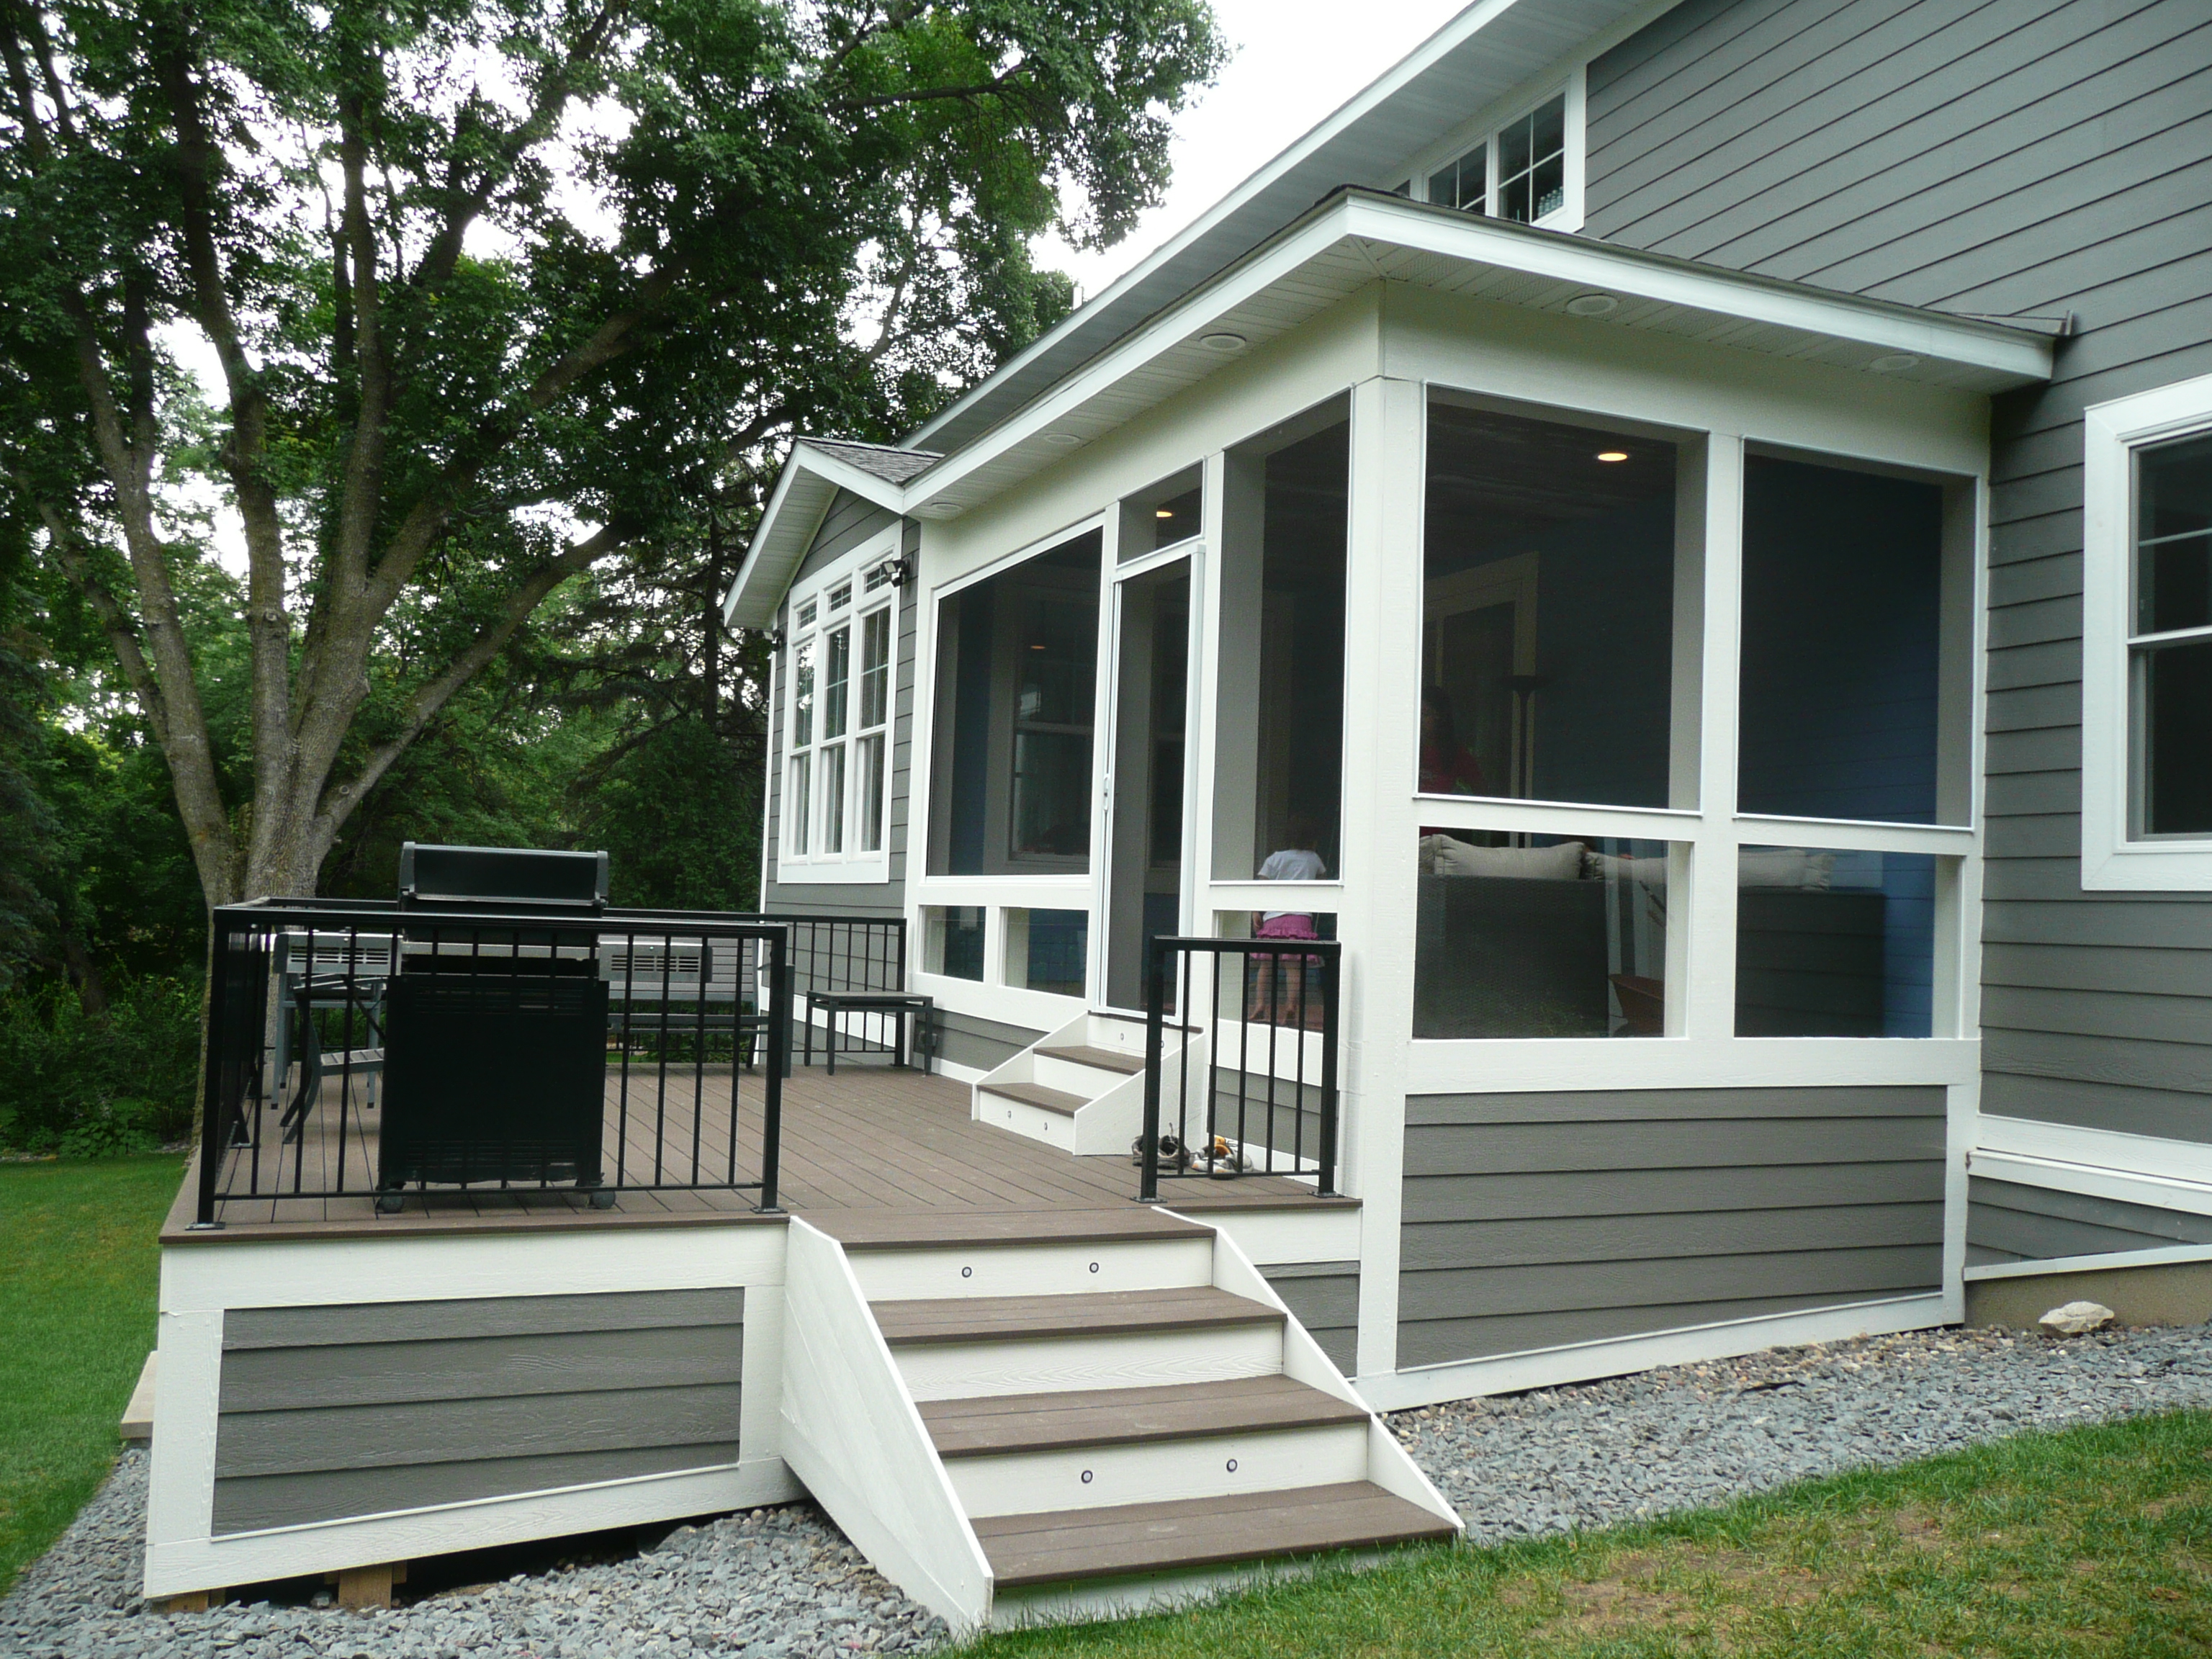 Screen porch and deck combination.